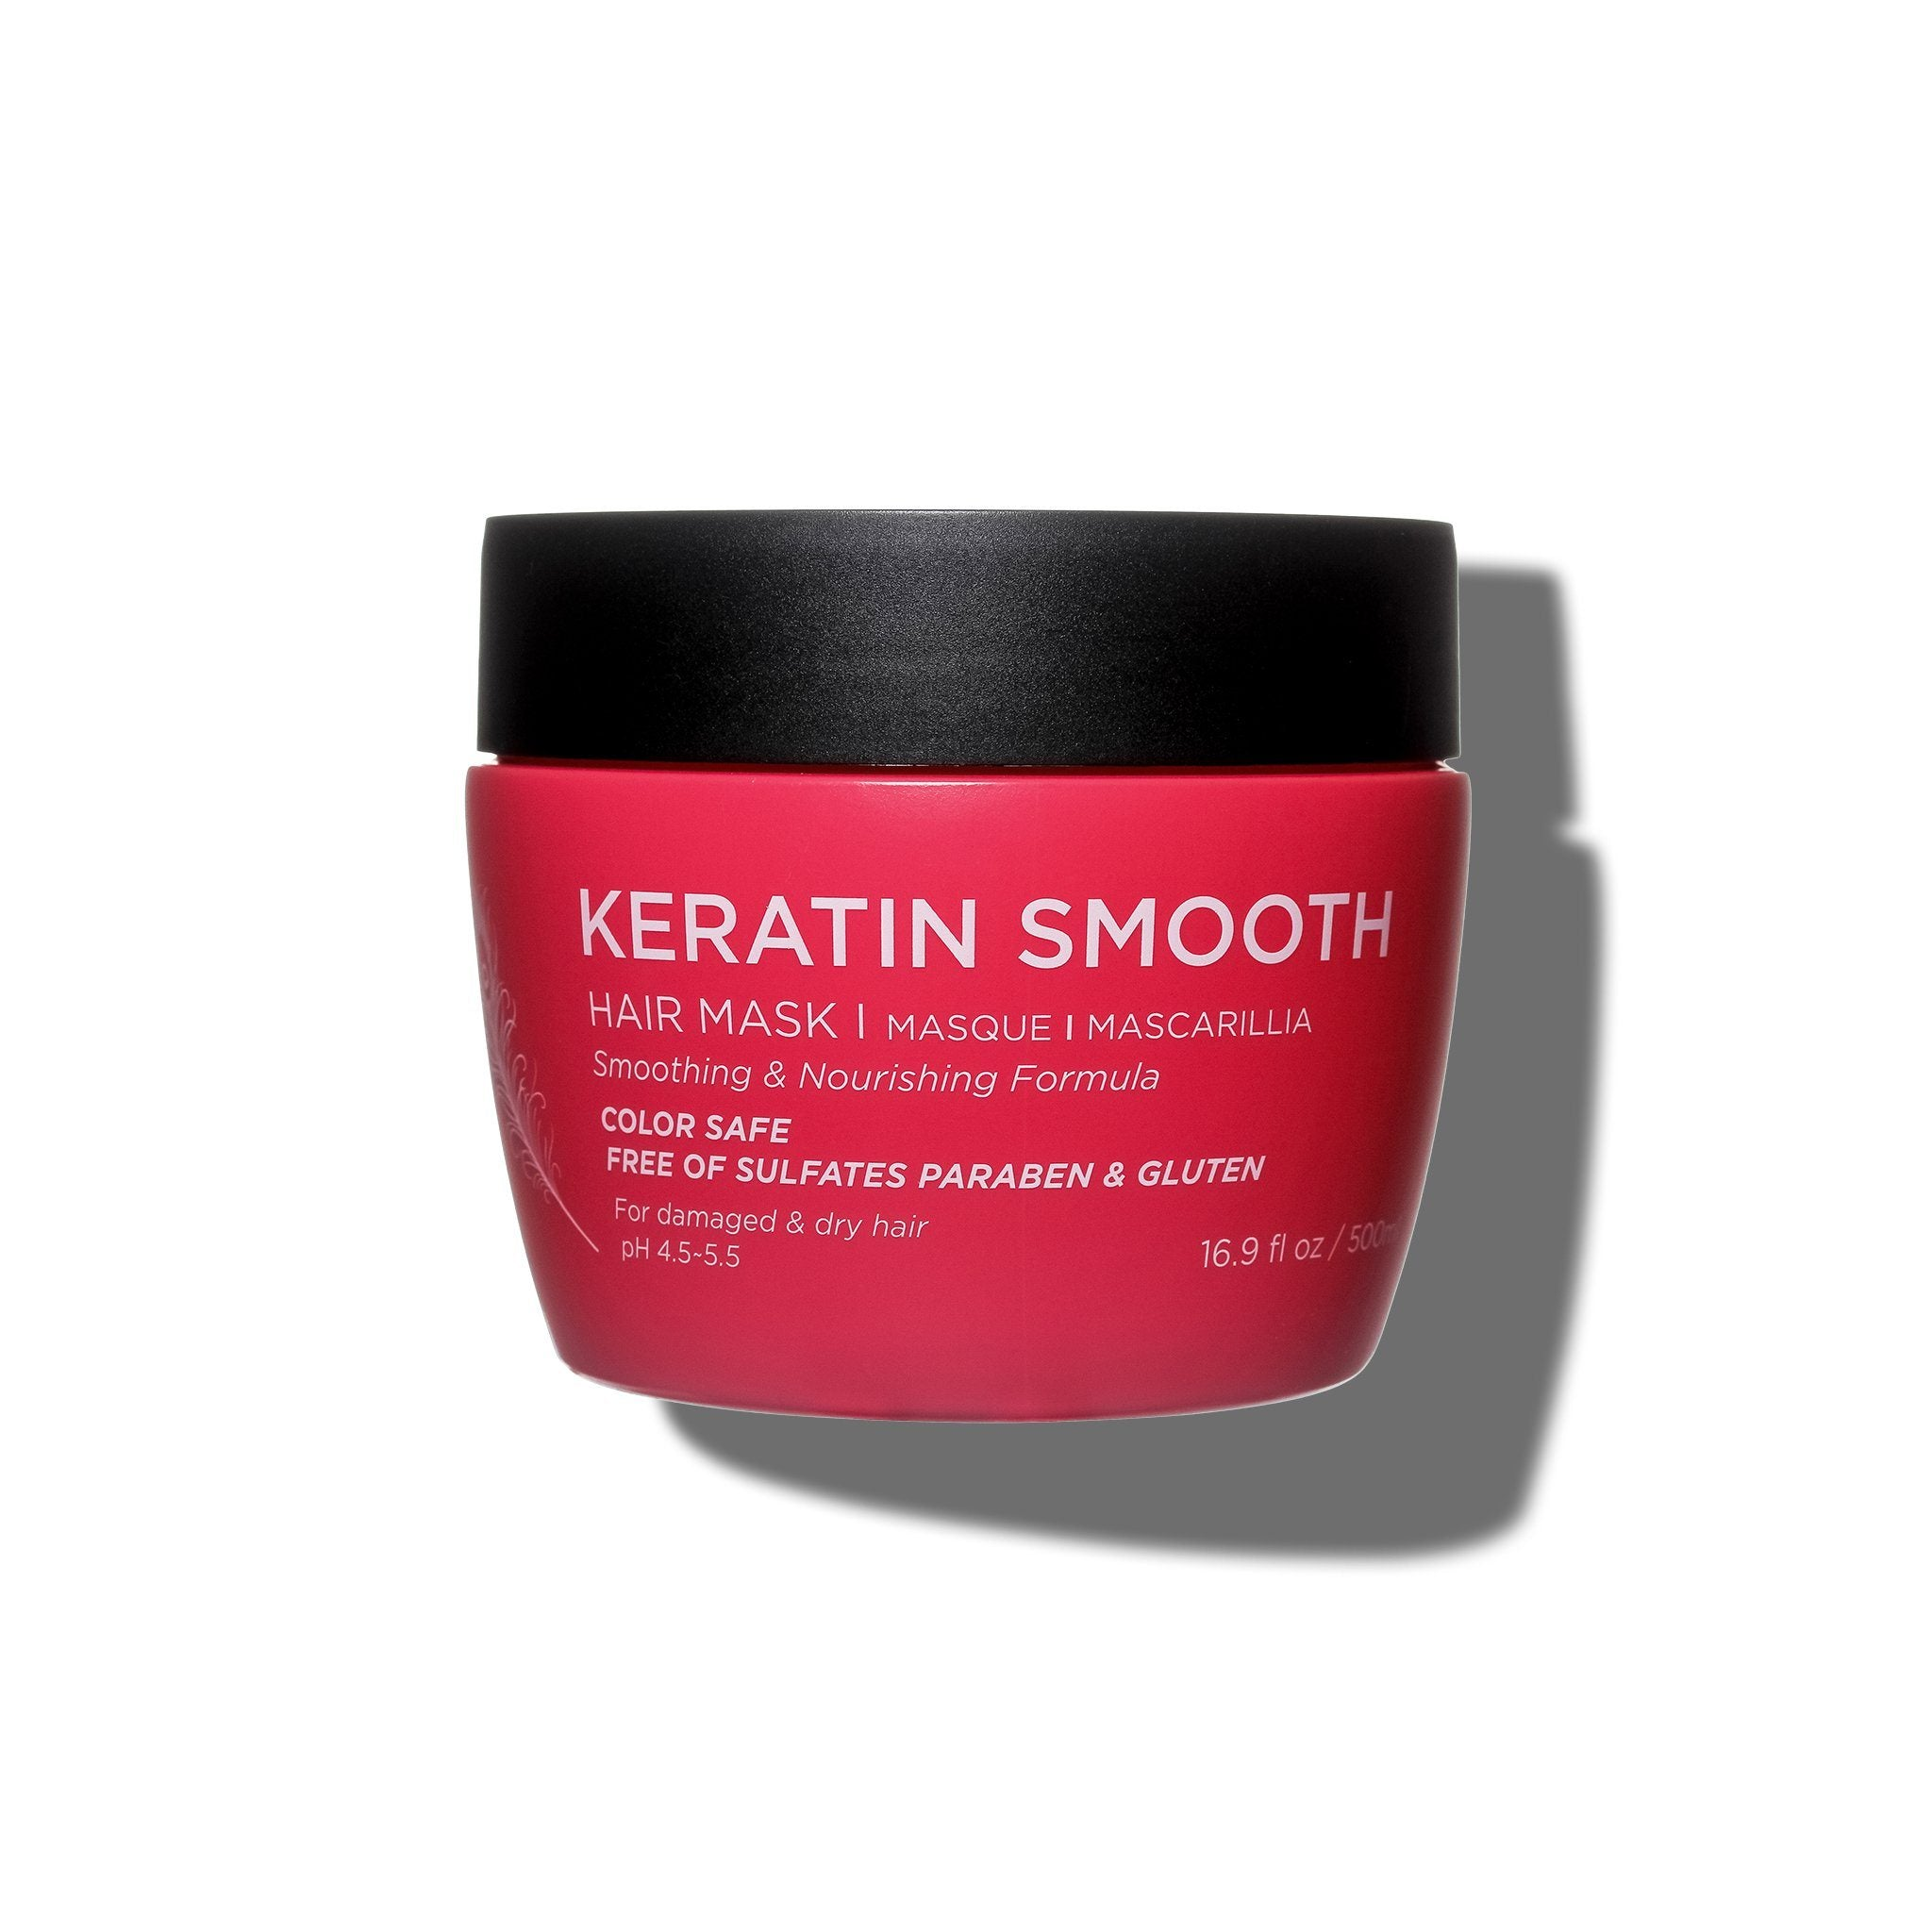 Keratin Smooth Hair Mask